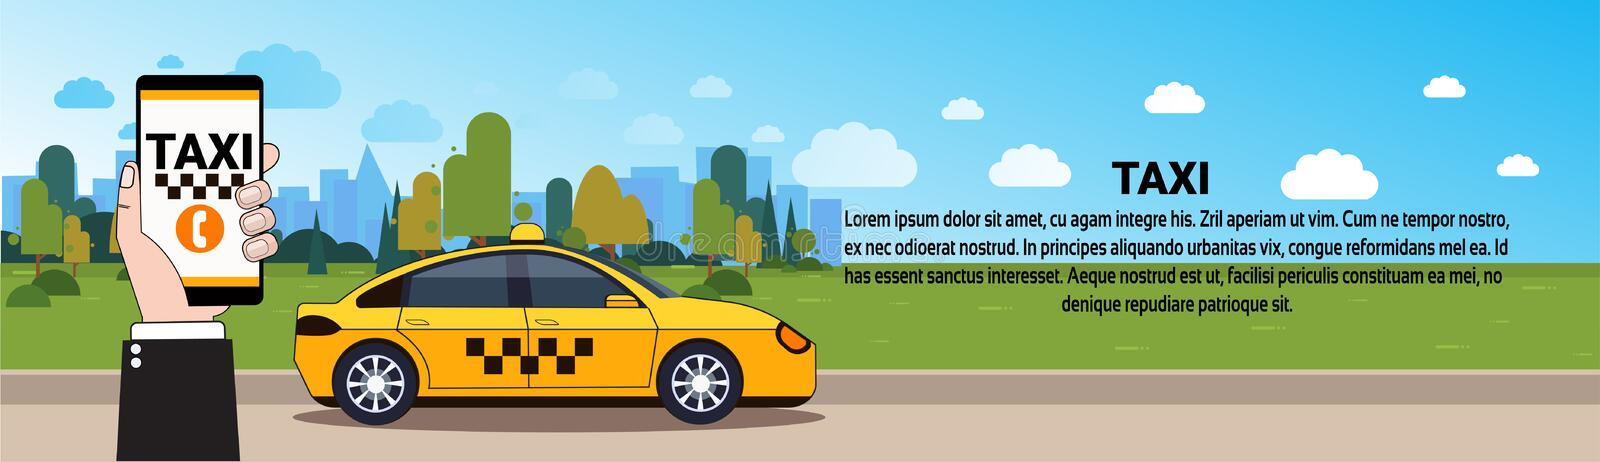 Mobile Taxi Service Hand Holding Smart Phone With Online Order App Over Yellow Cab Car On Road Horizontal Banner. Flat Vector Illustration royalty free illustration